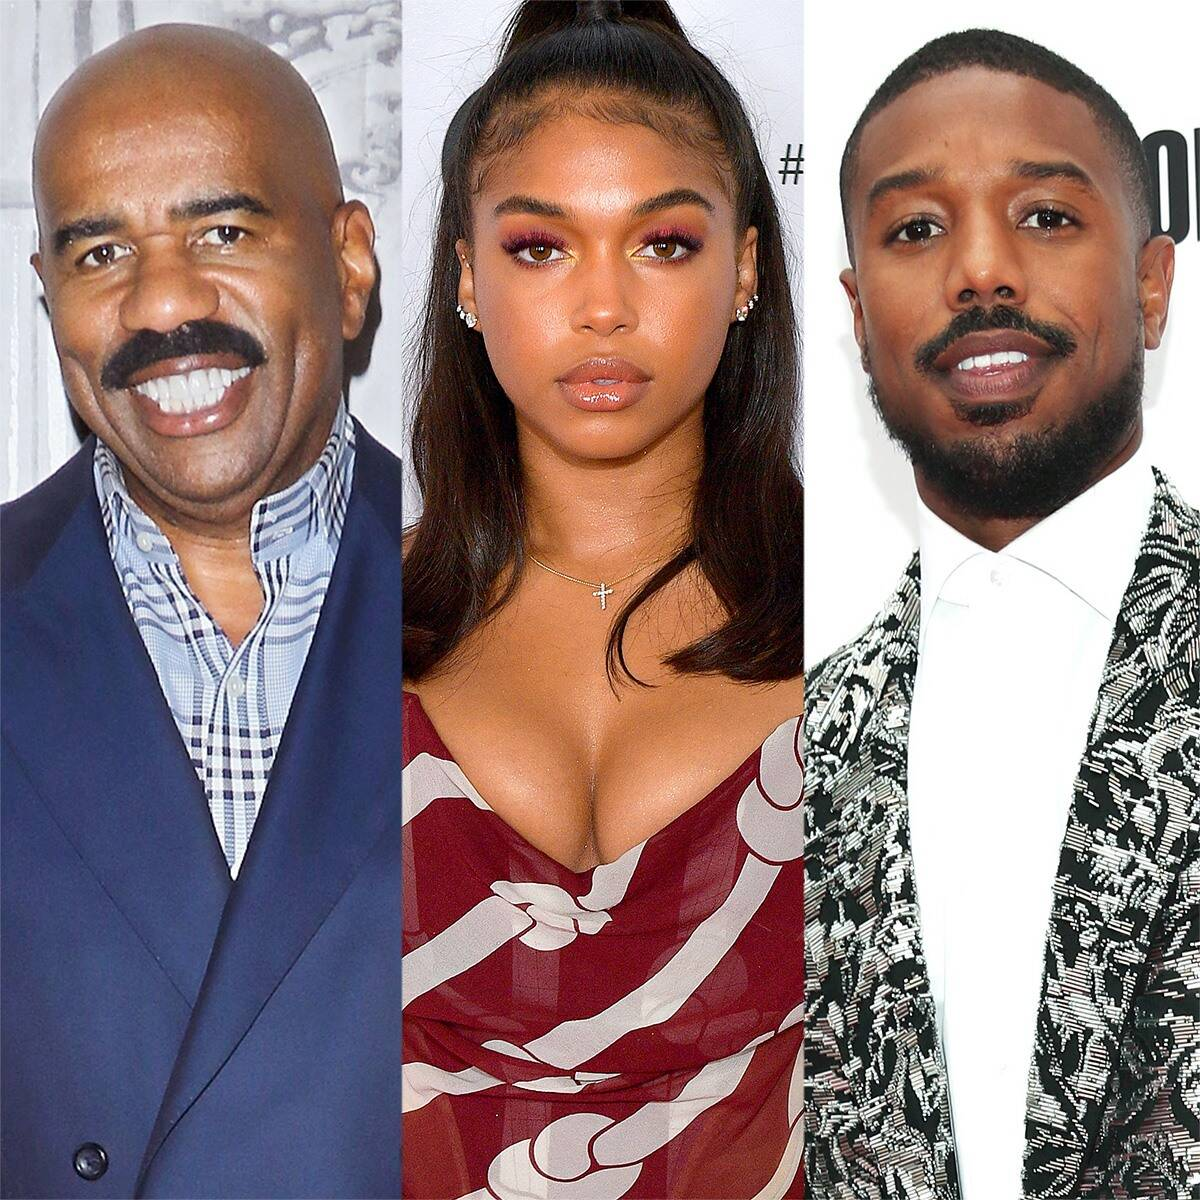 Steve Harvey's Hilarious Reaction To Daughter Lori's Relationship With Michael B. Jordan